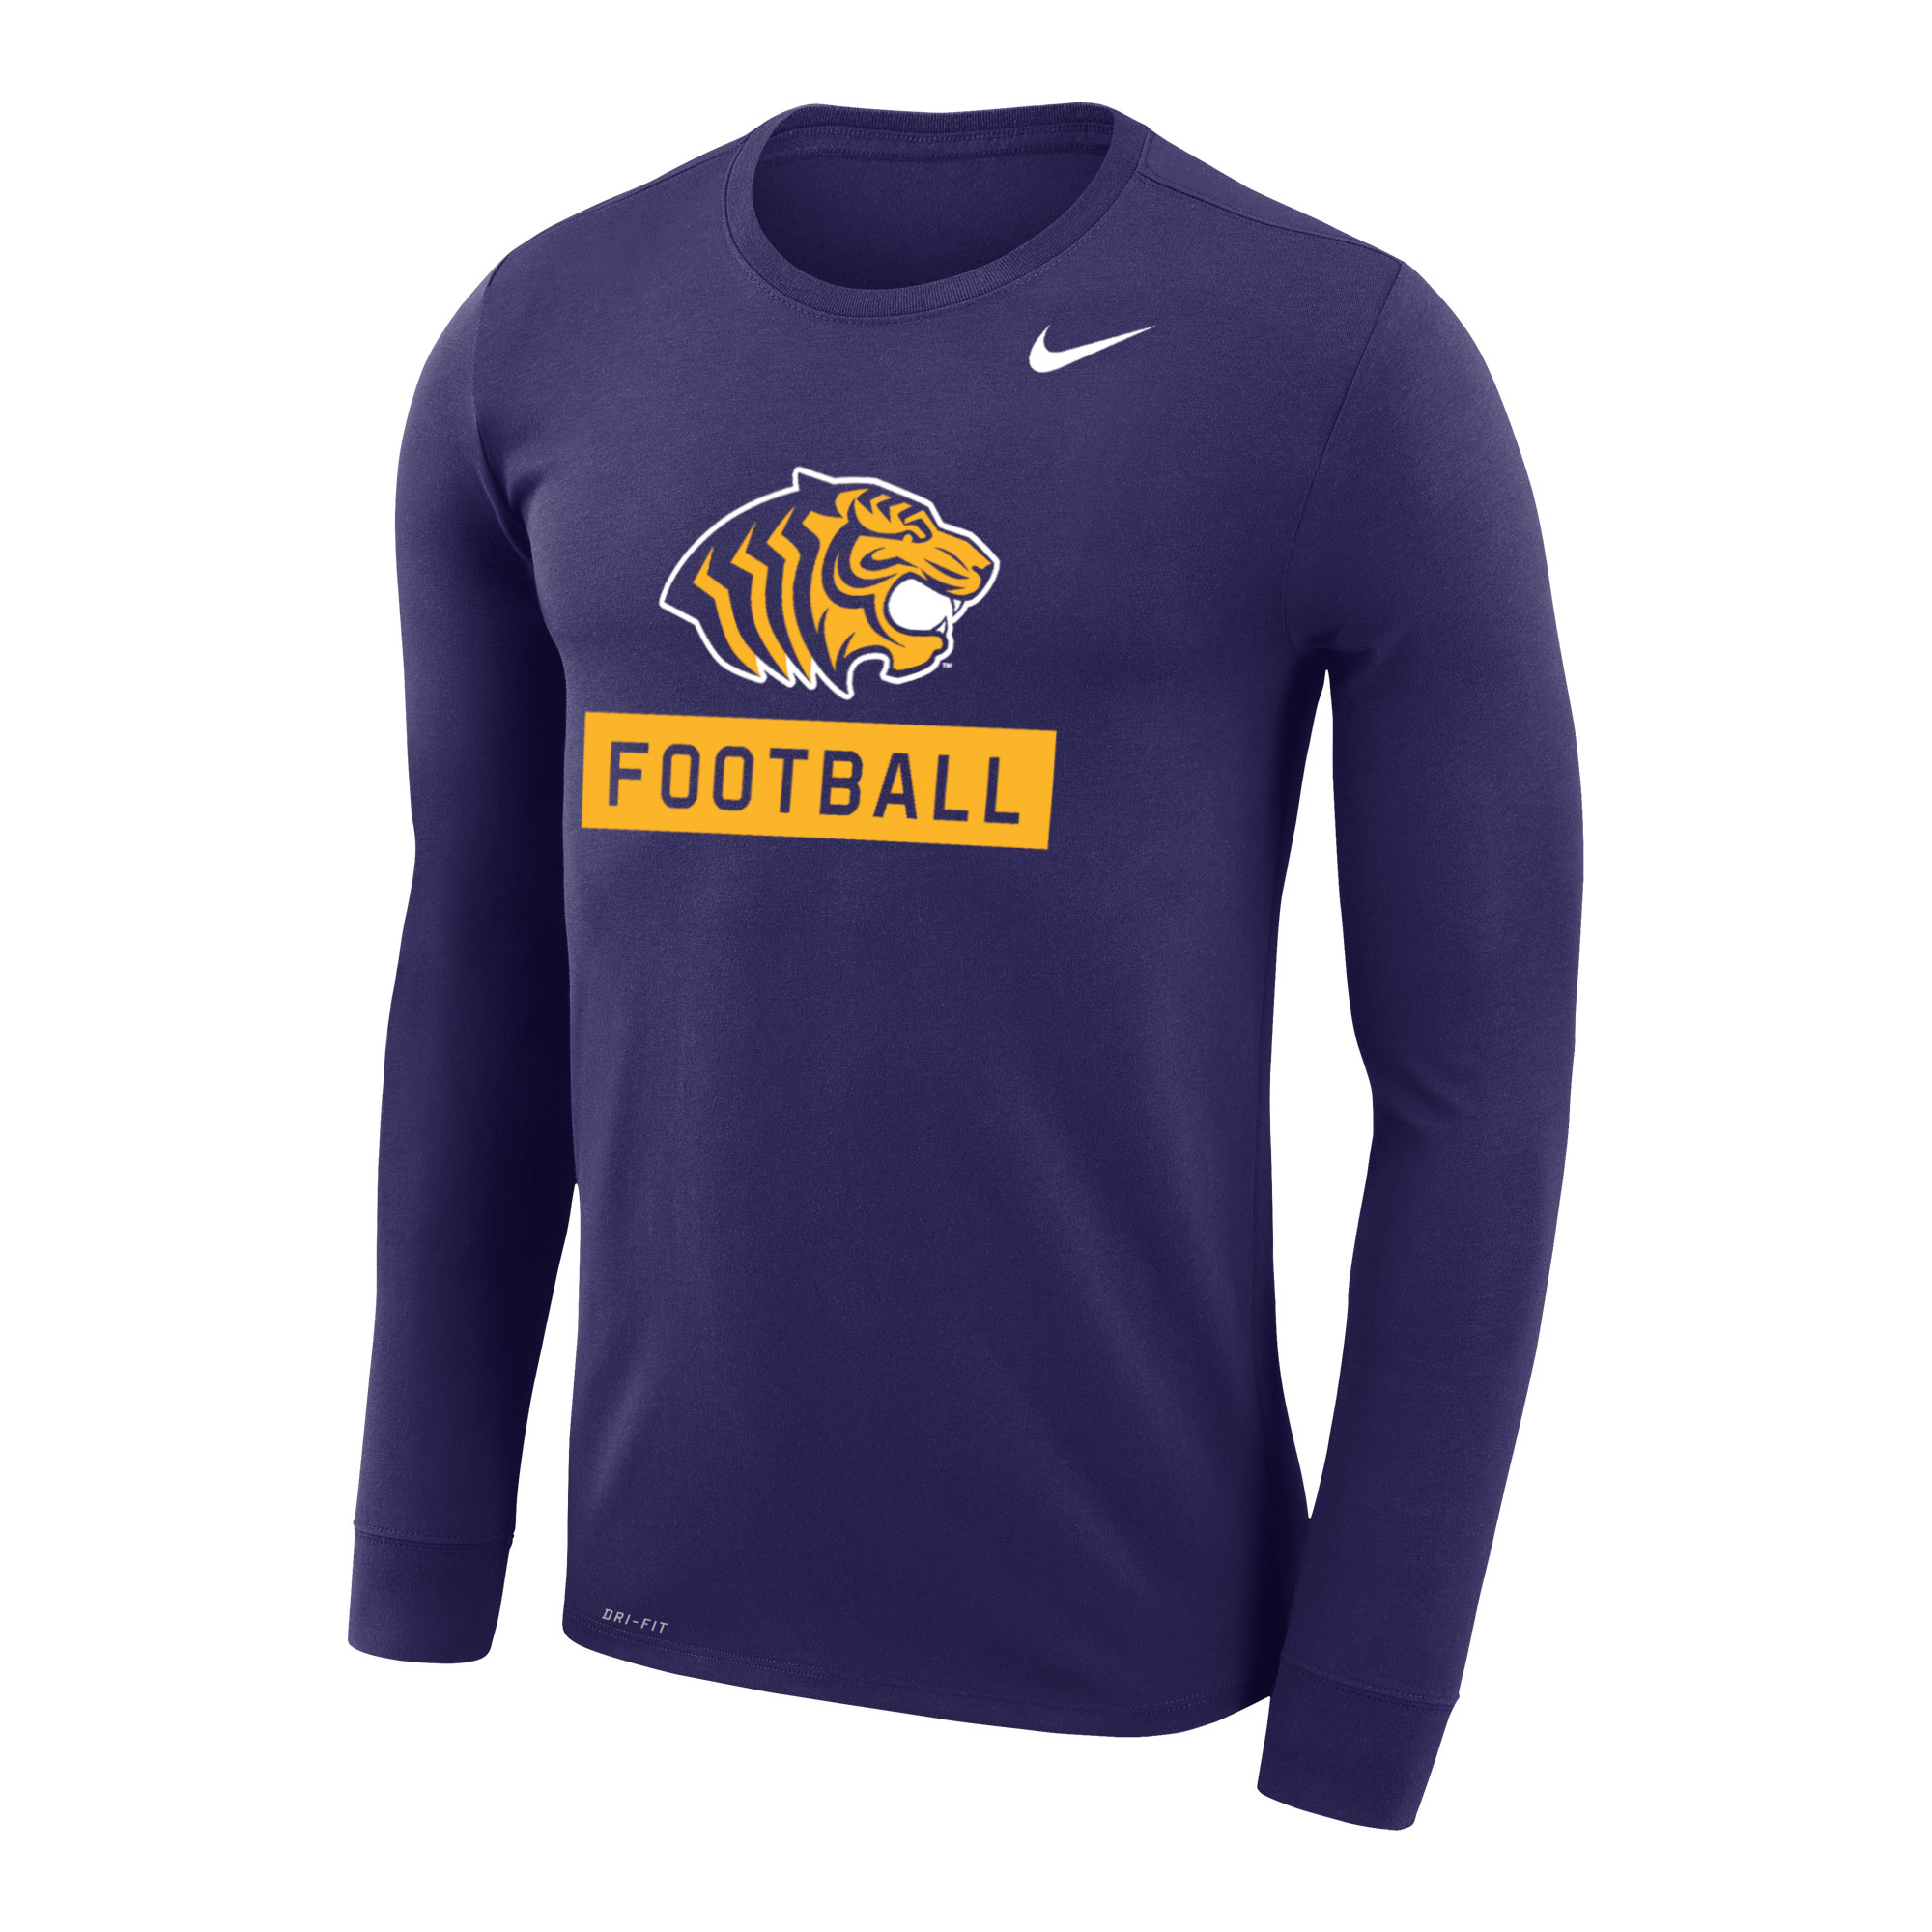 TIGER FOOTBALL NIKE LEGEND LS TEE